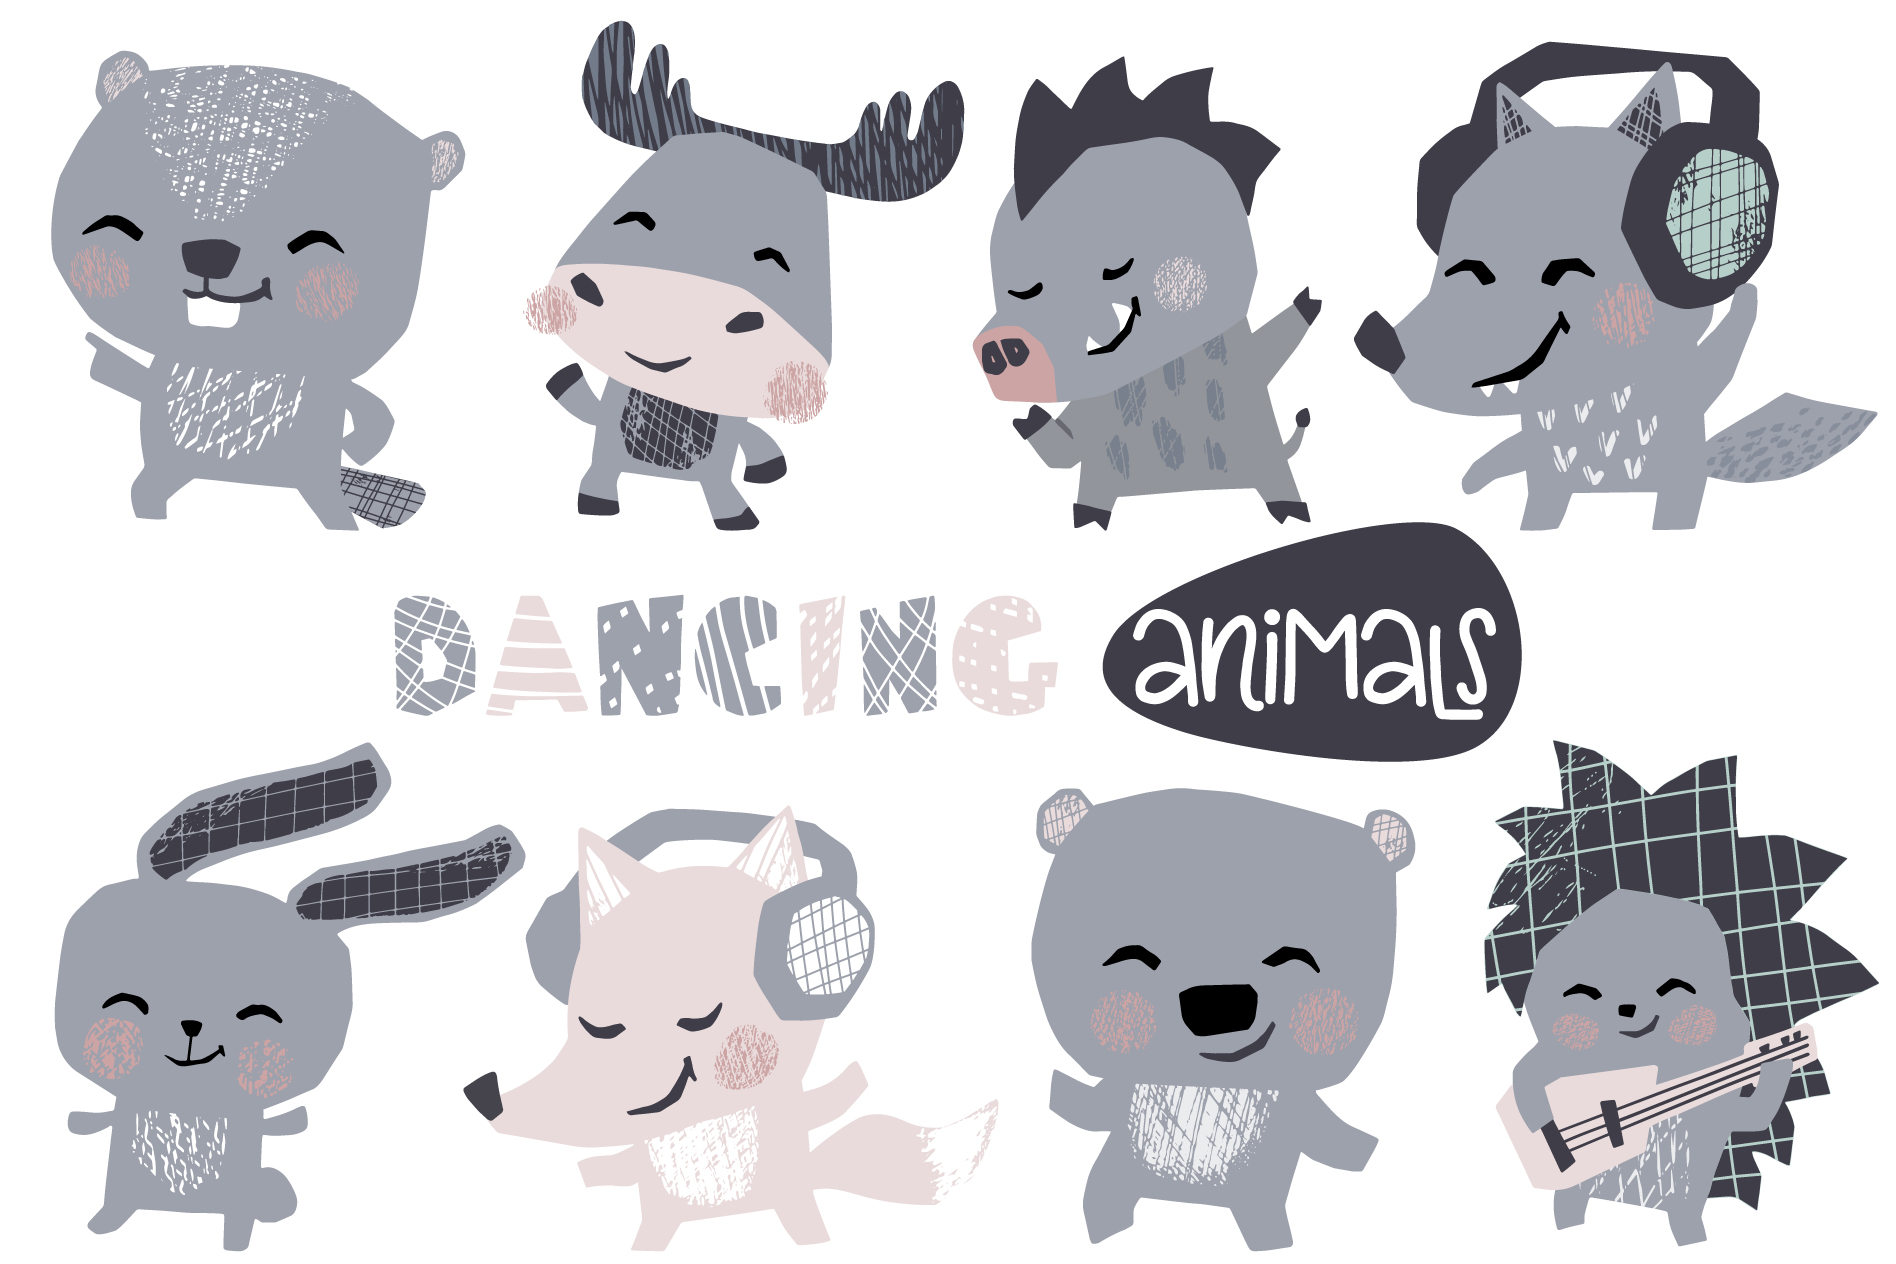 Dancing animals. Music kids vector example image 3